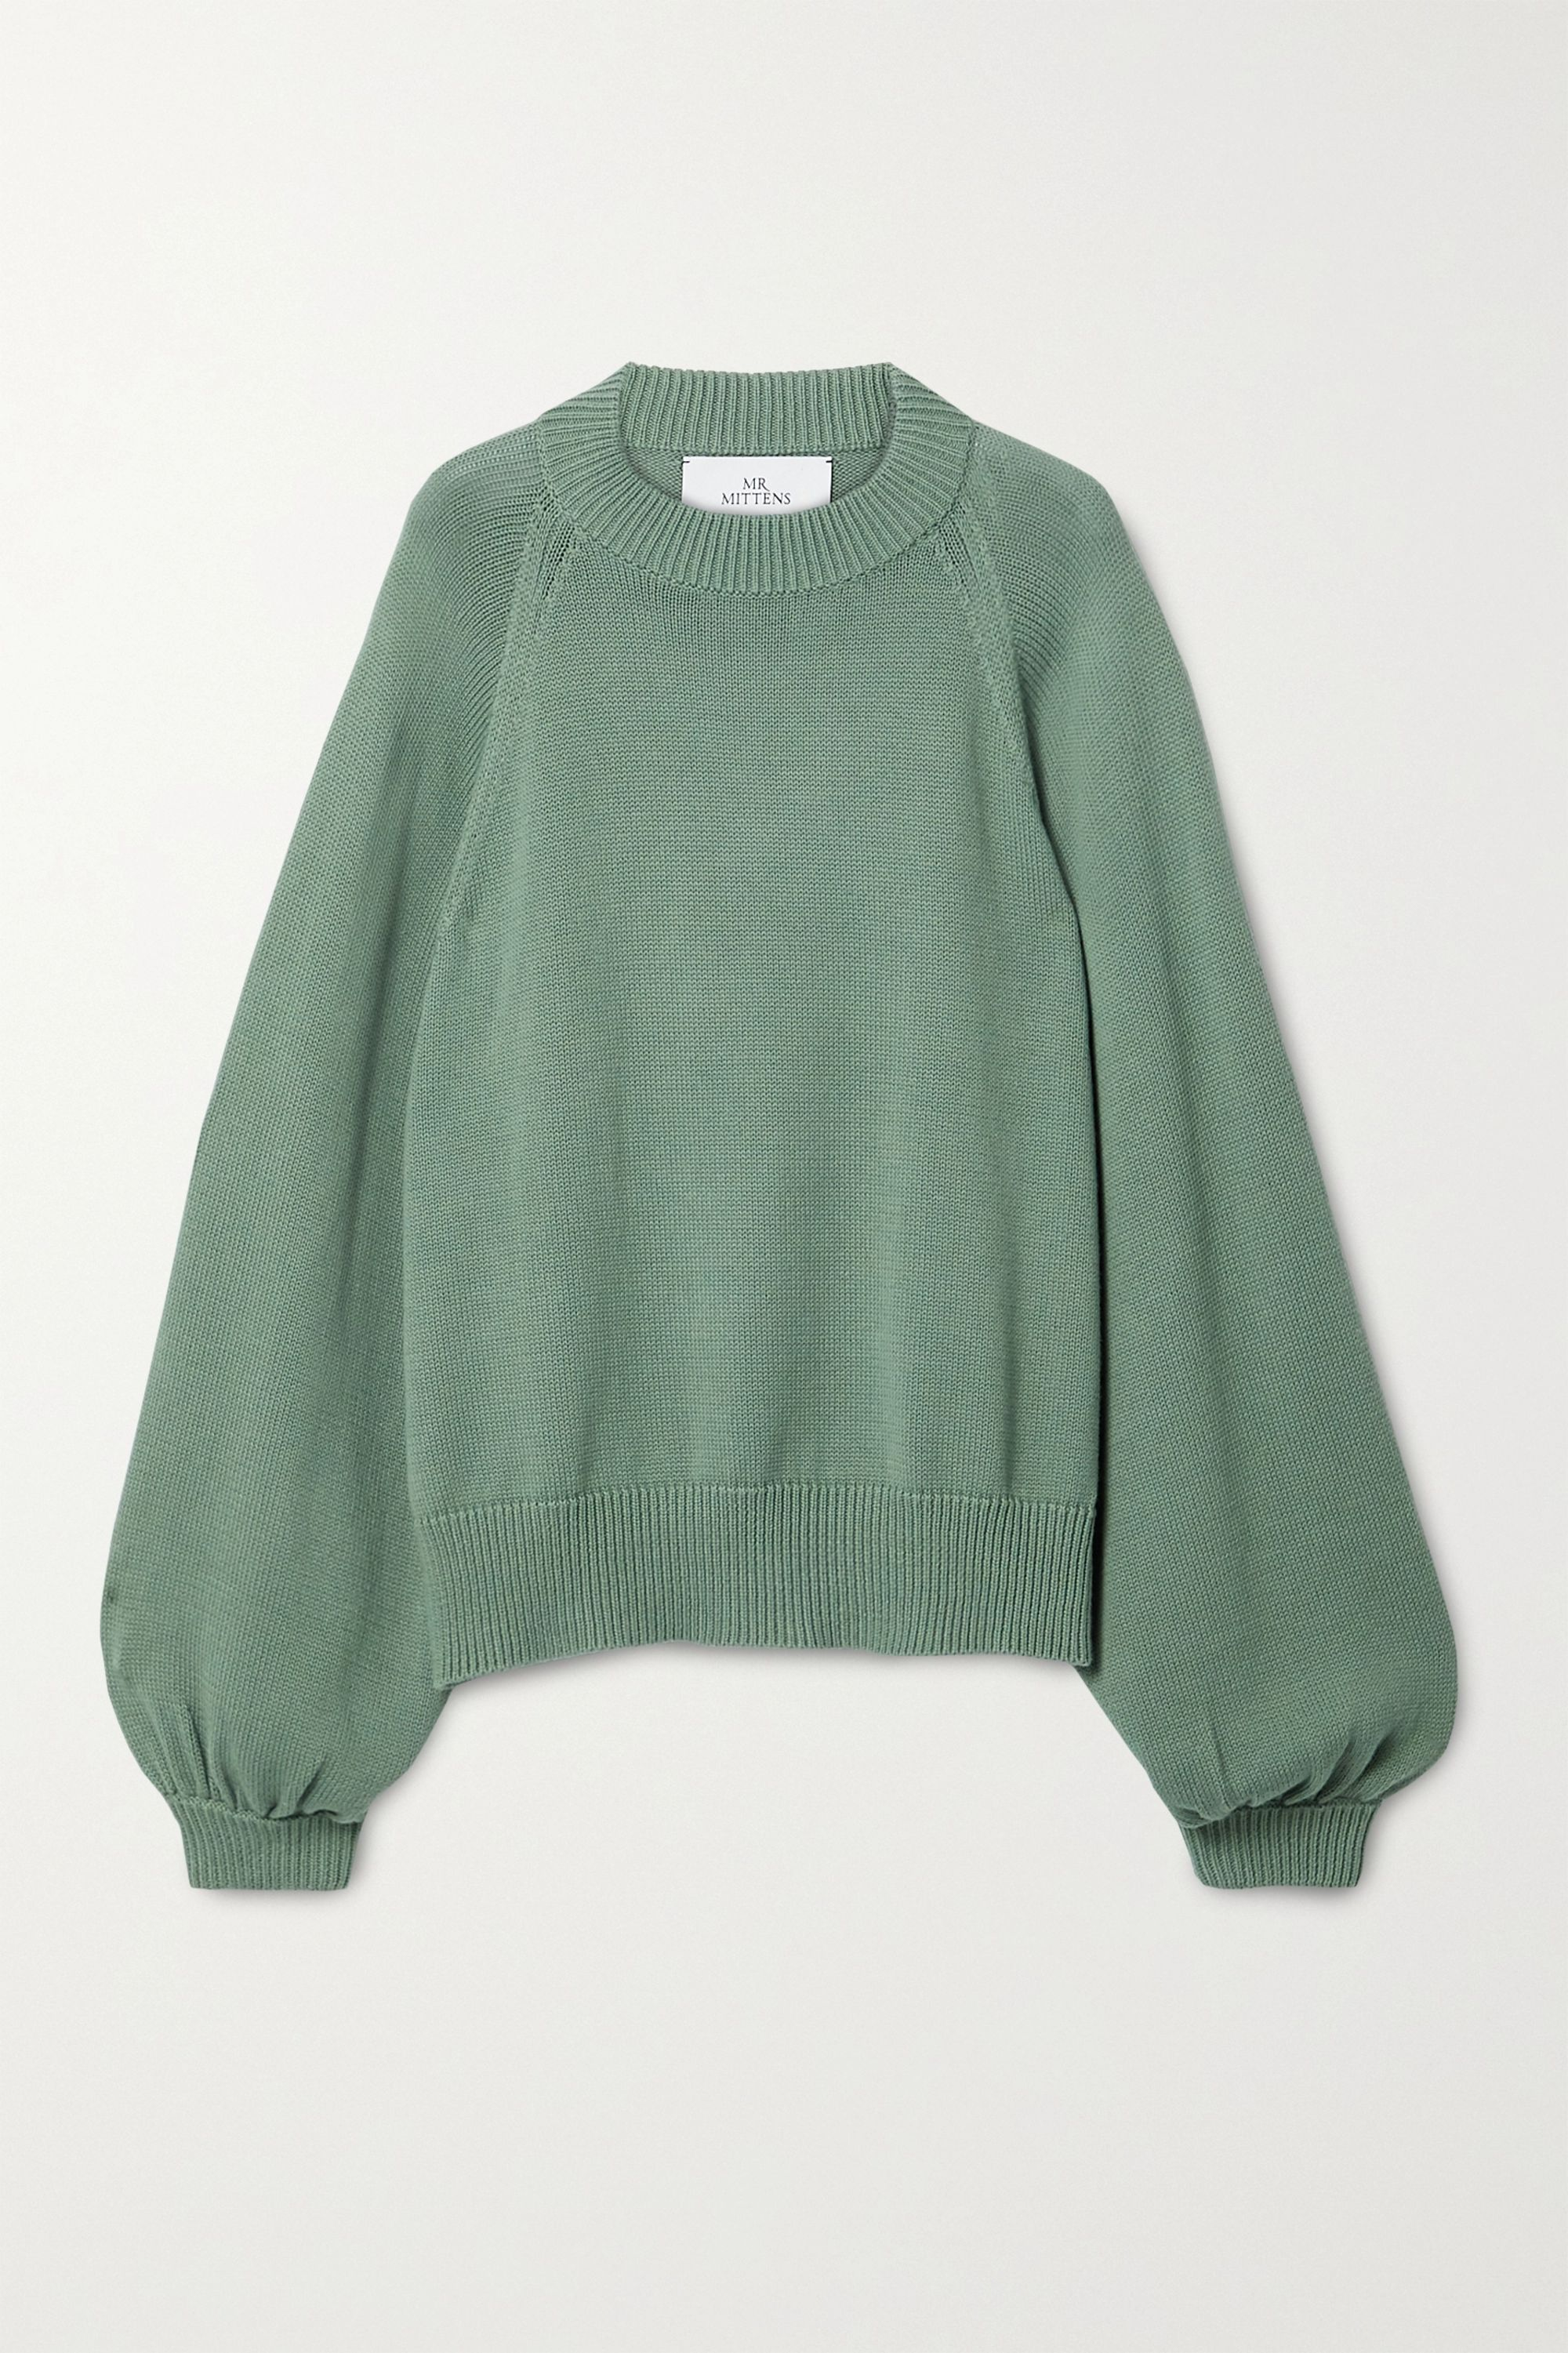 Green Oversized cotton sweater | I Love Mr Mittens in 2020